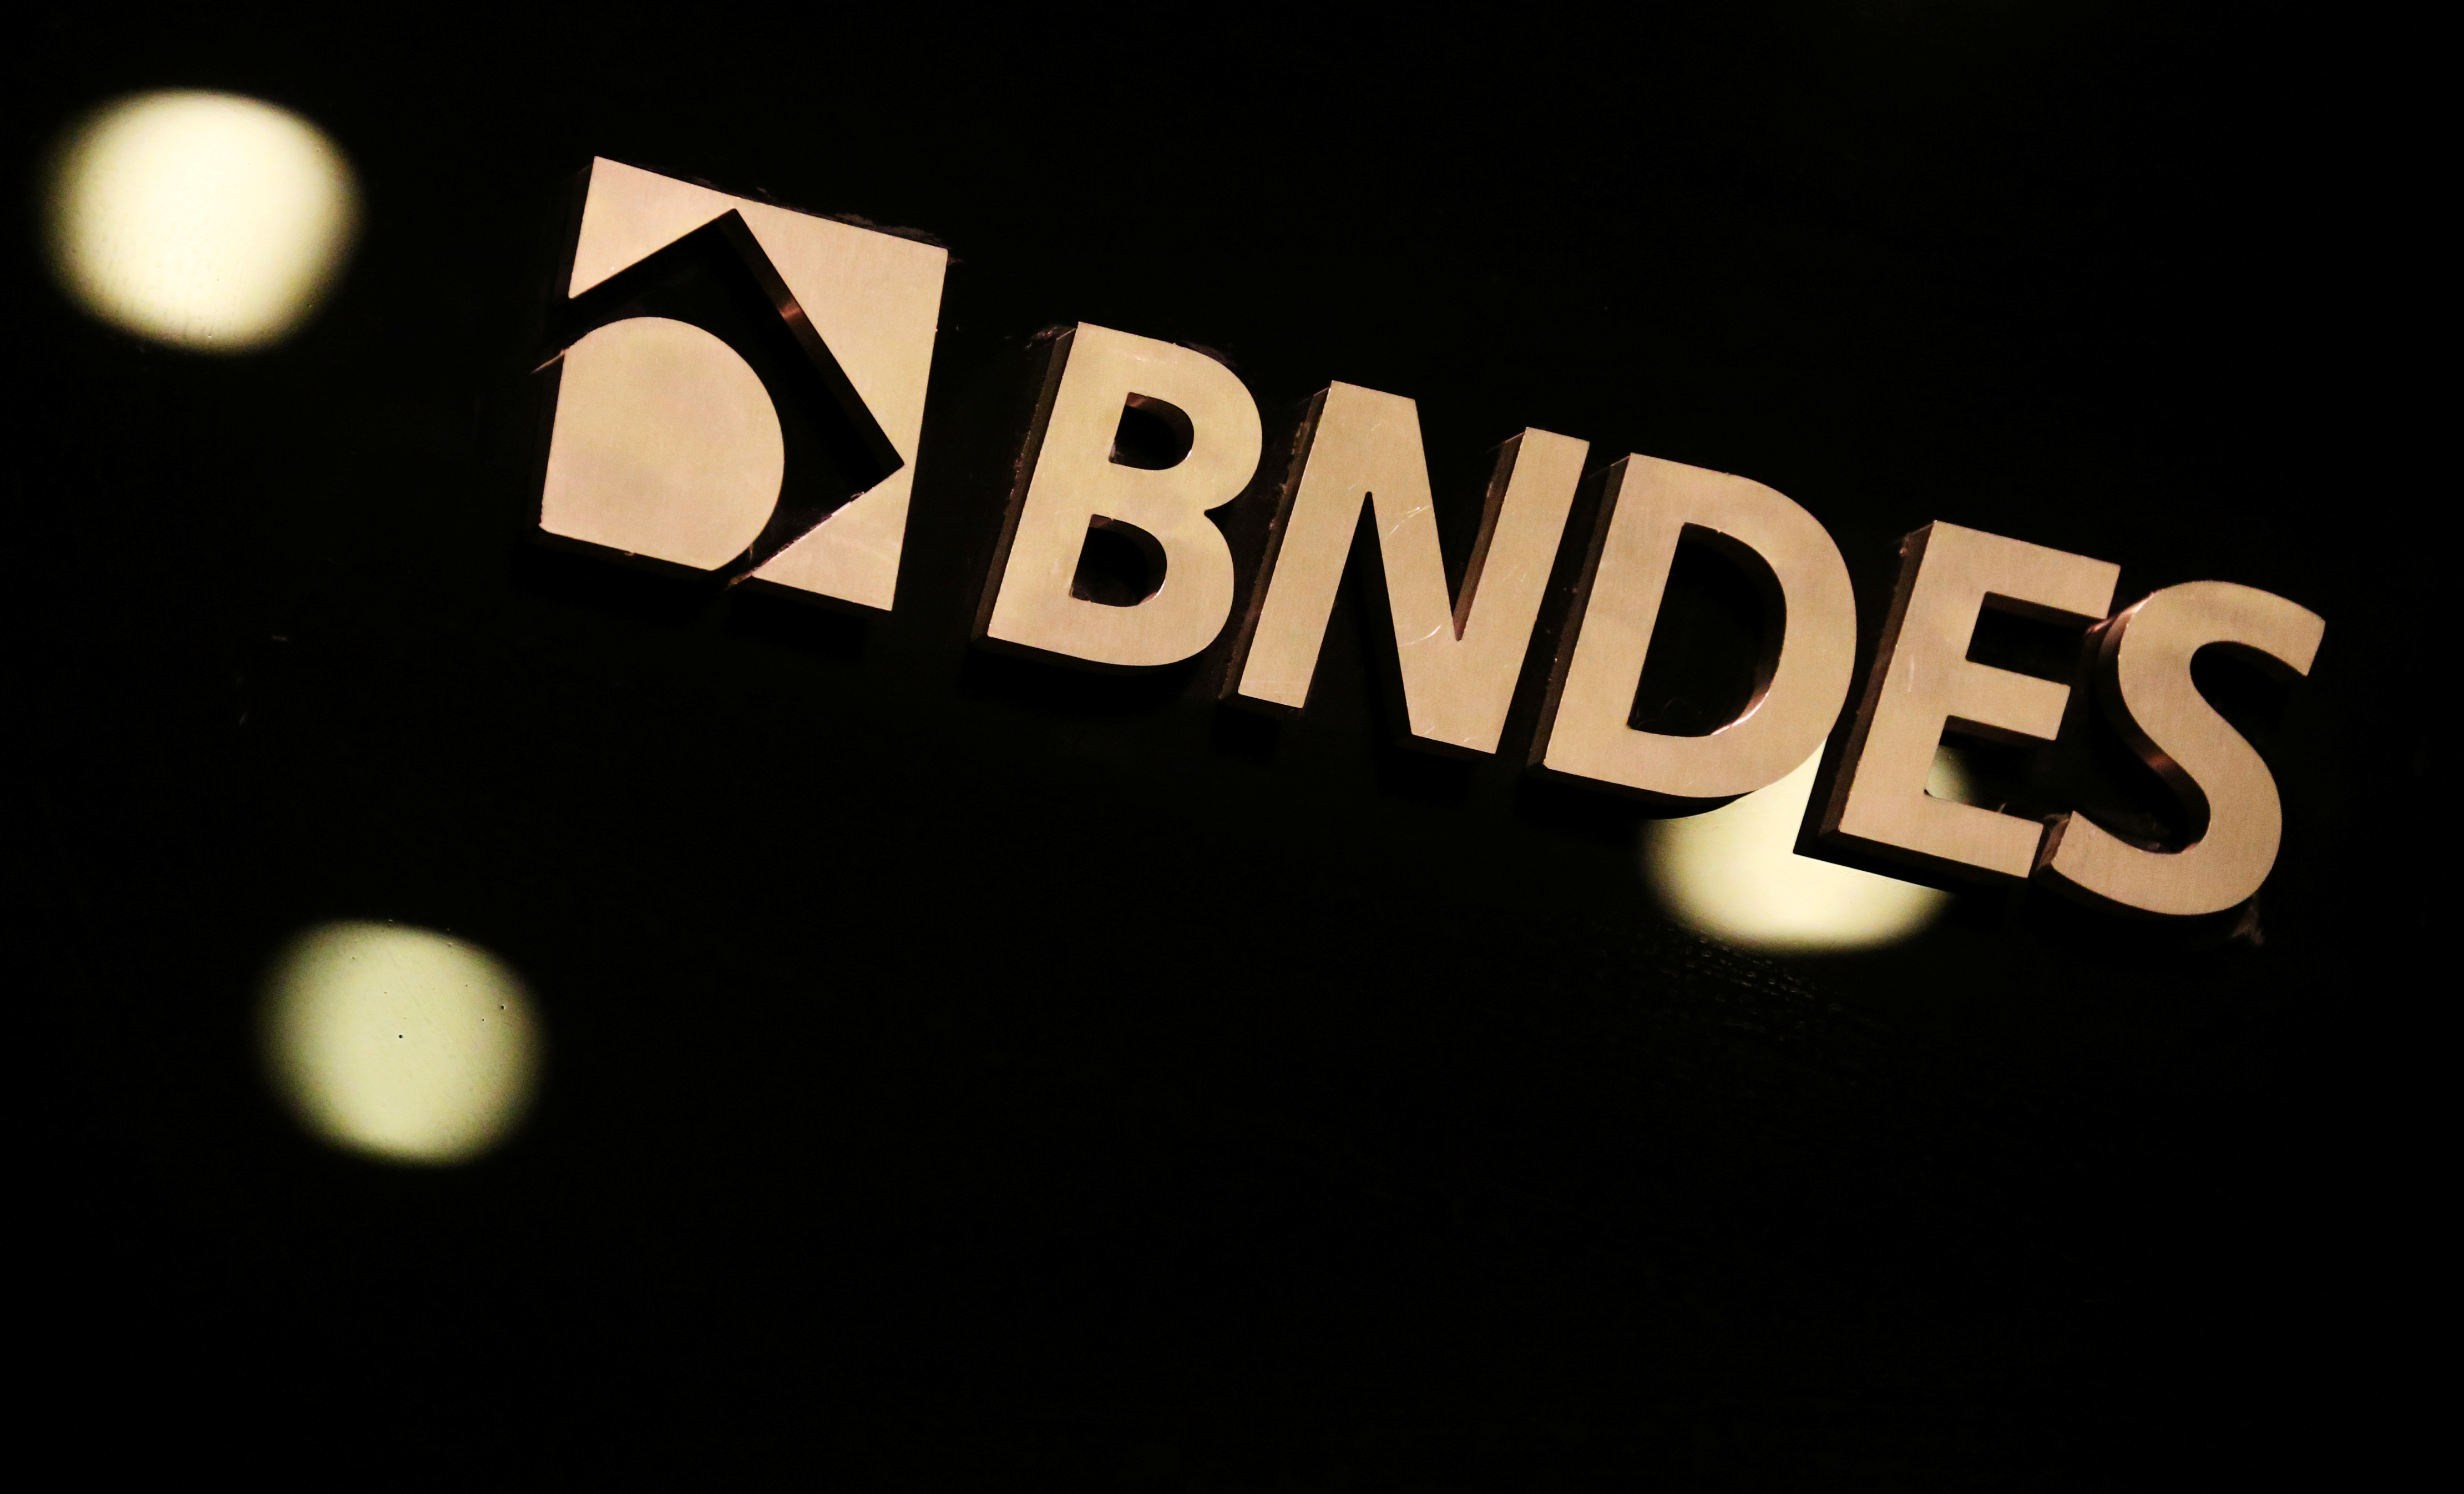 Nothing changes at Brazil's BNDES after departure of director: CEO